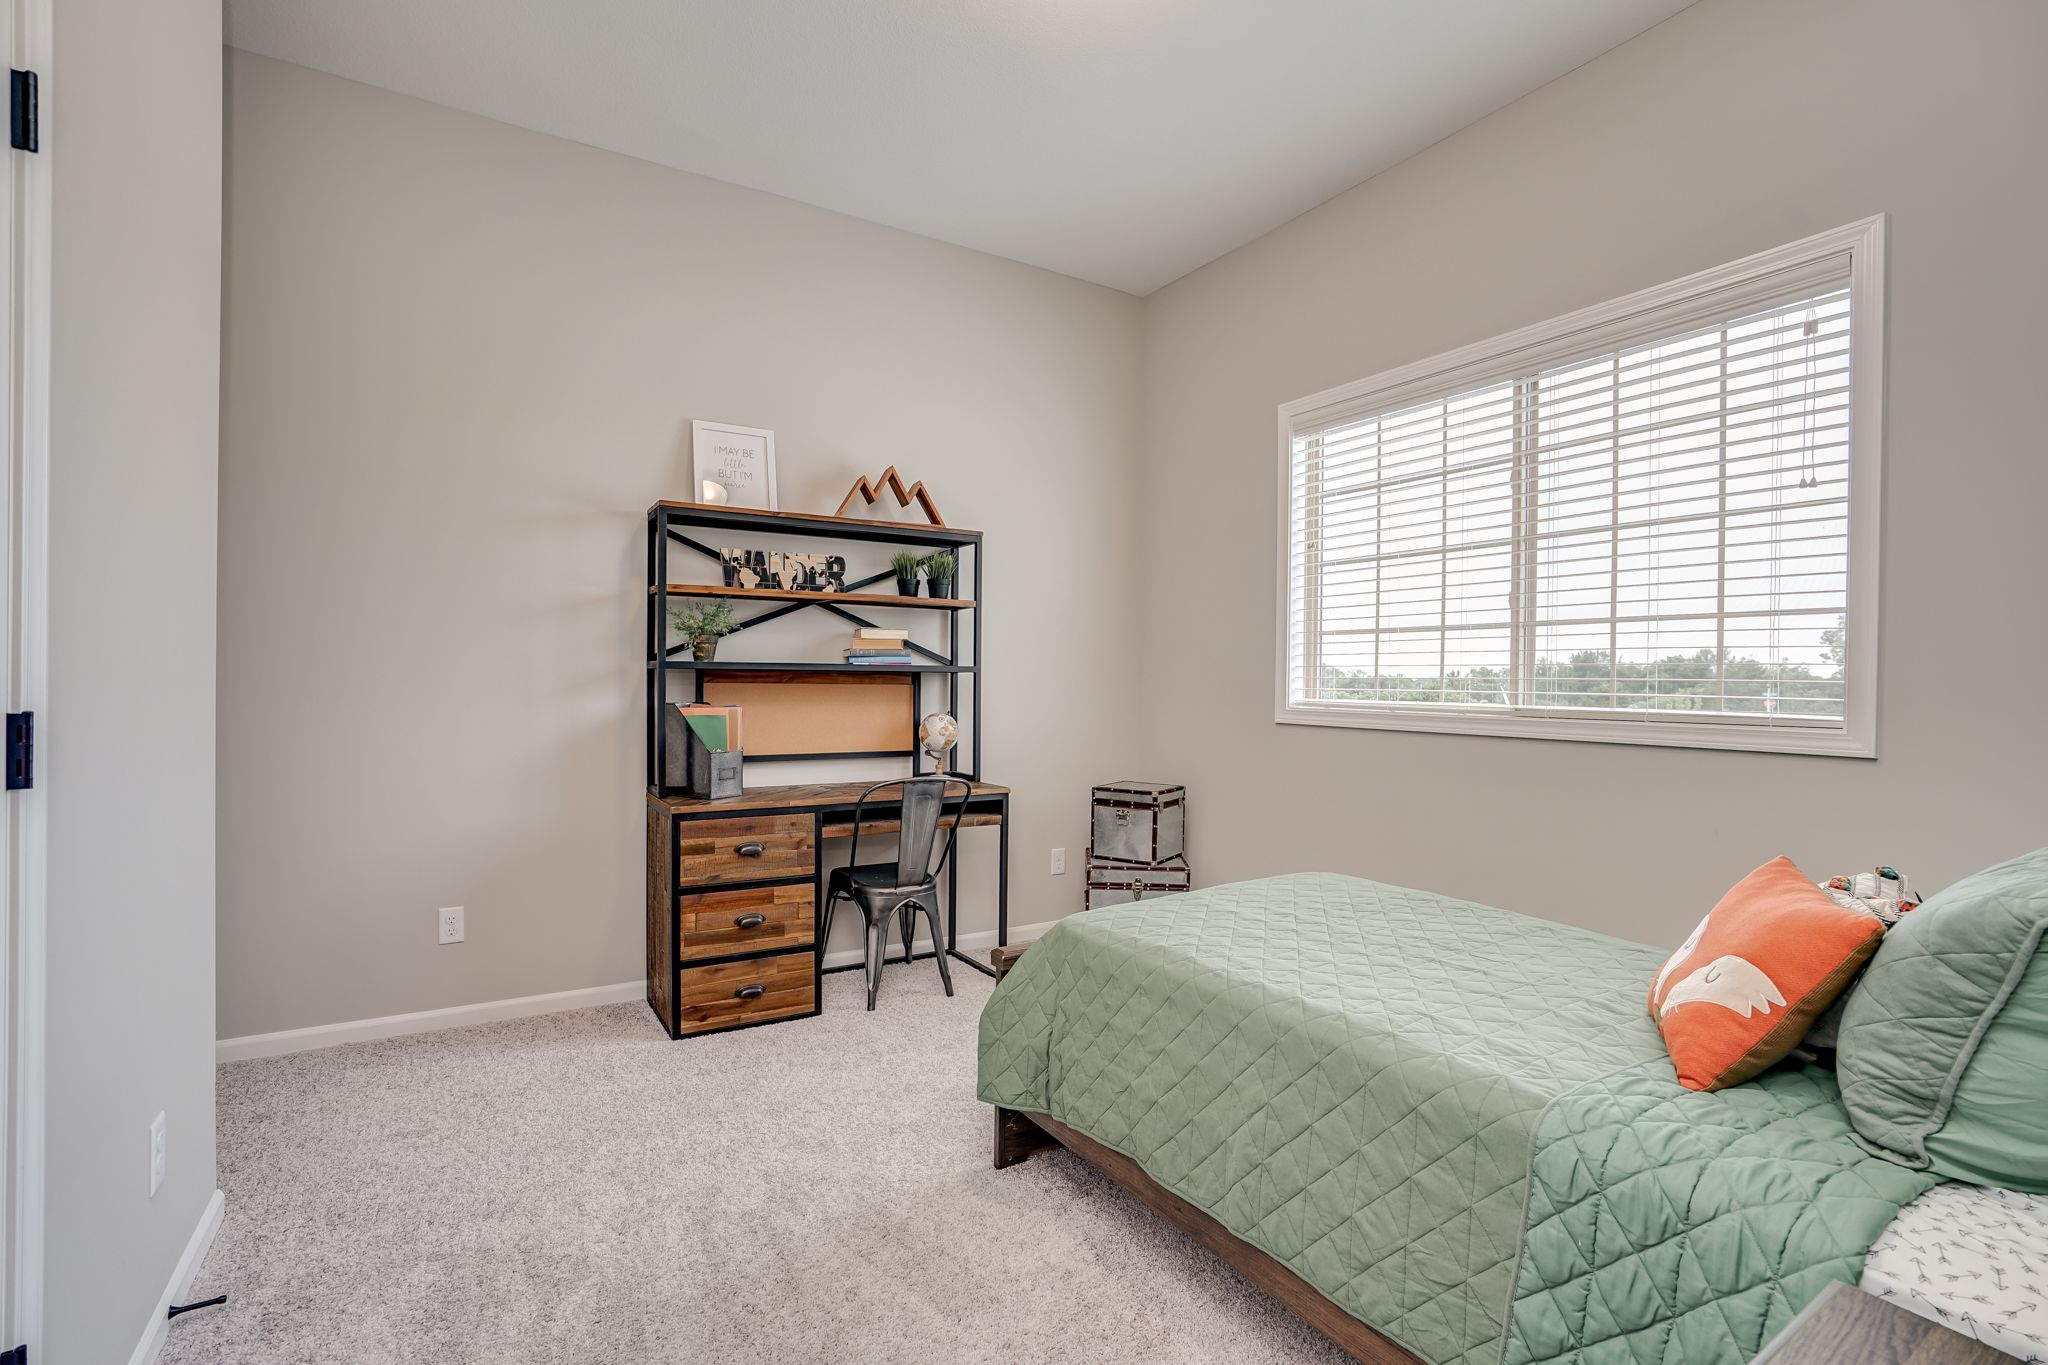 Bedroom featured in the Valentia By Summit Homes in Kansas City, MO